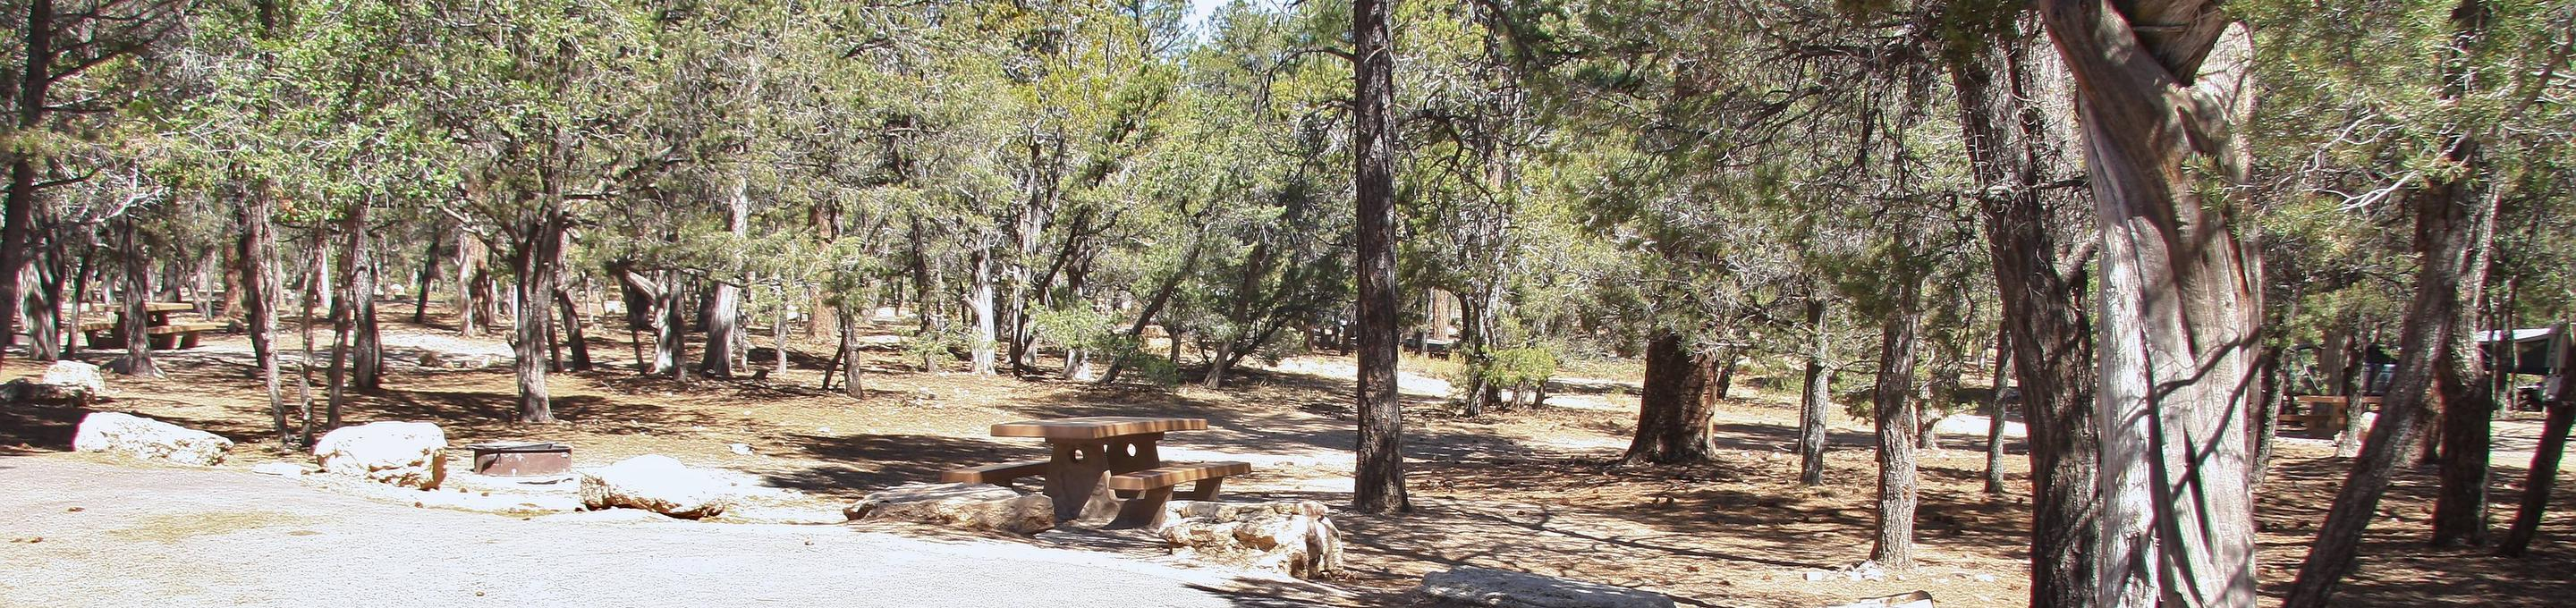 Picnic table, fire pit, and parking spot, Mather CampgroundThe picnic table, fire pit, and parking spot for Aspen Loop 46, Mather Campground